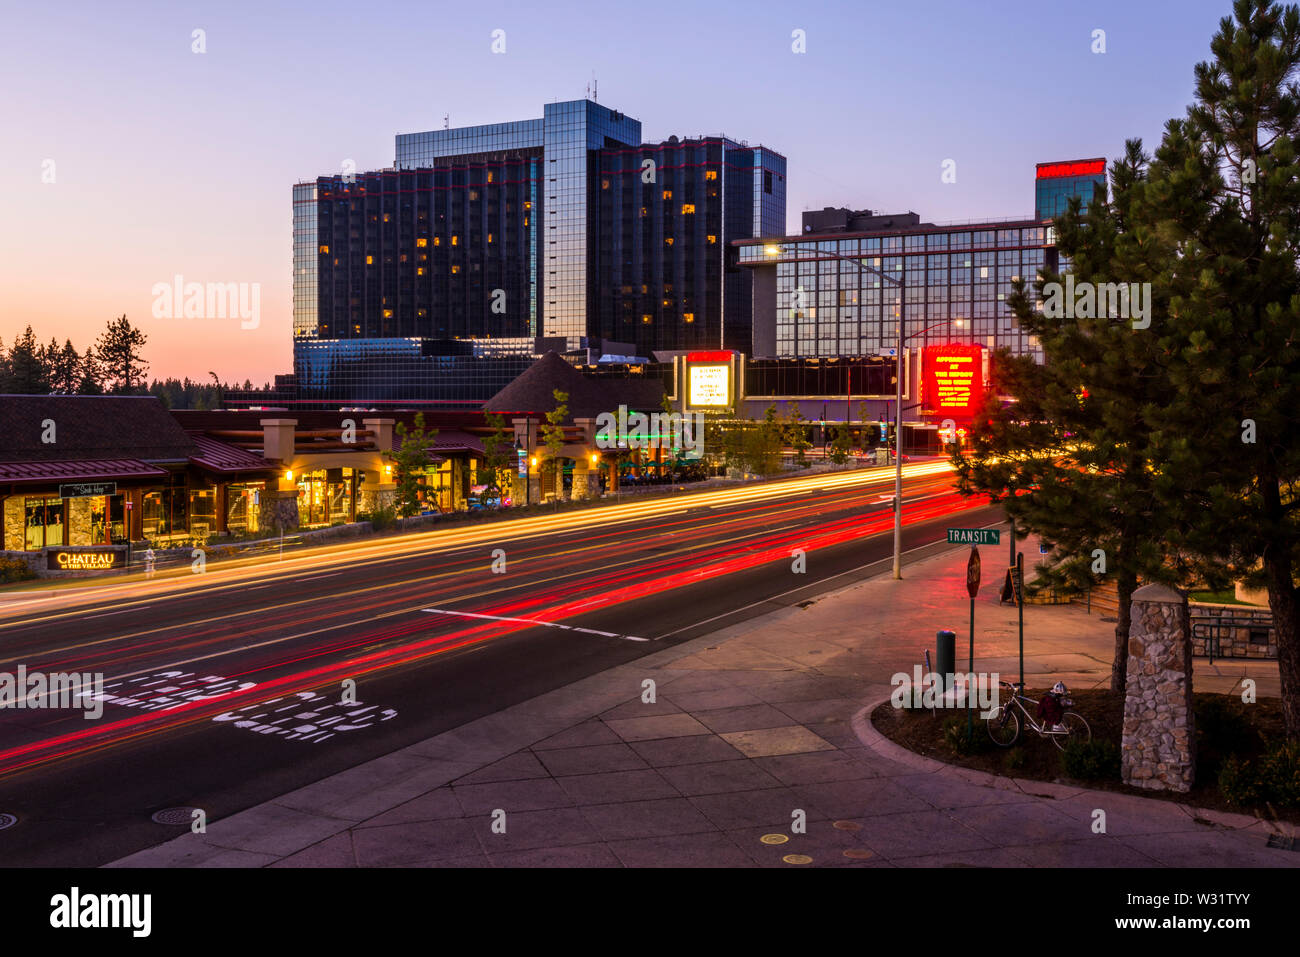 A view at dusk of Stateline, Nevada of Harvey's Casino as seen from the Califonia side from the Heavenly Village, California. Stock Photo